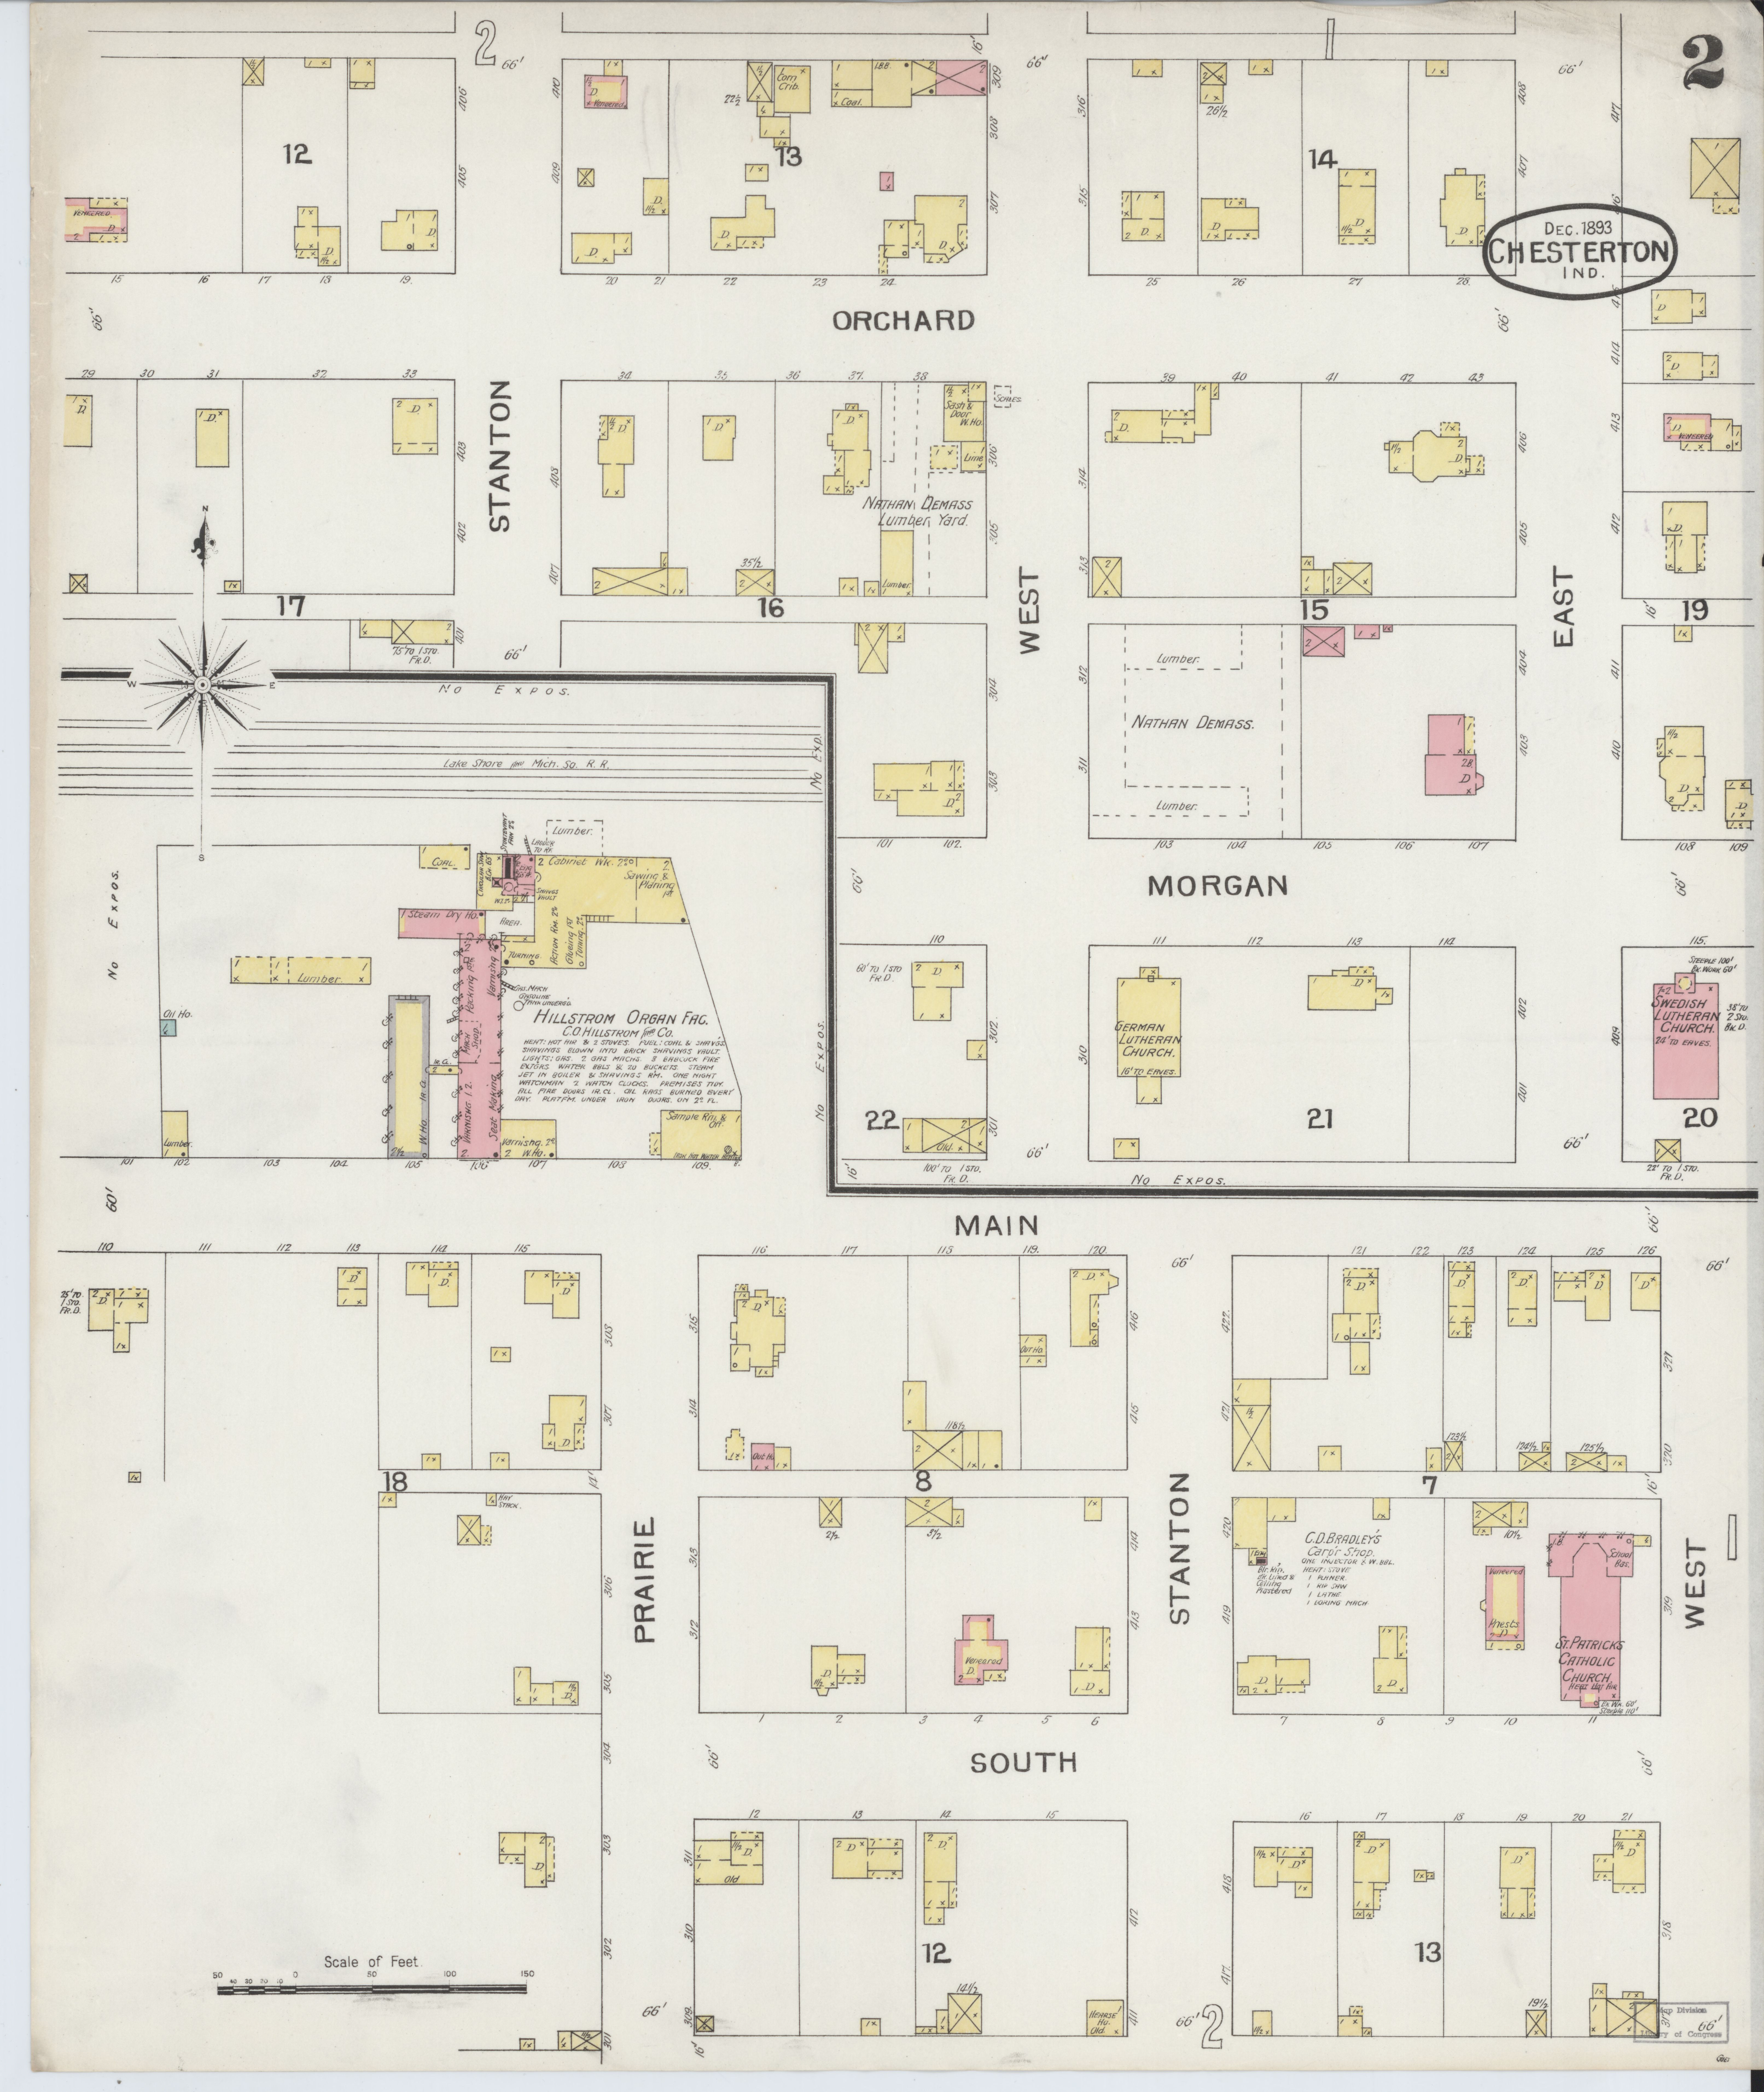 File Sanborn Fire Insurance Map From Chesterton Porter County